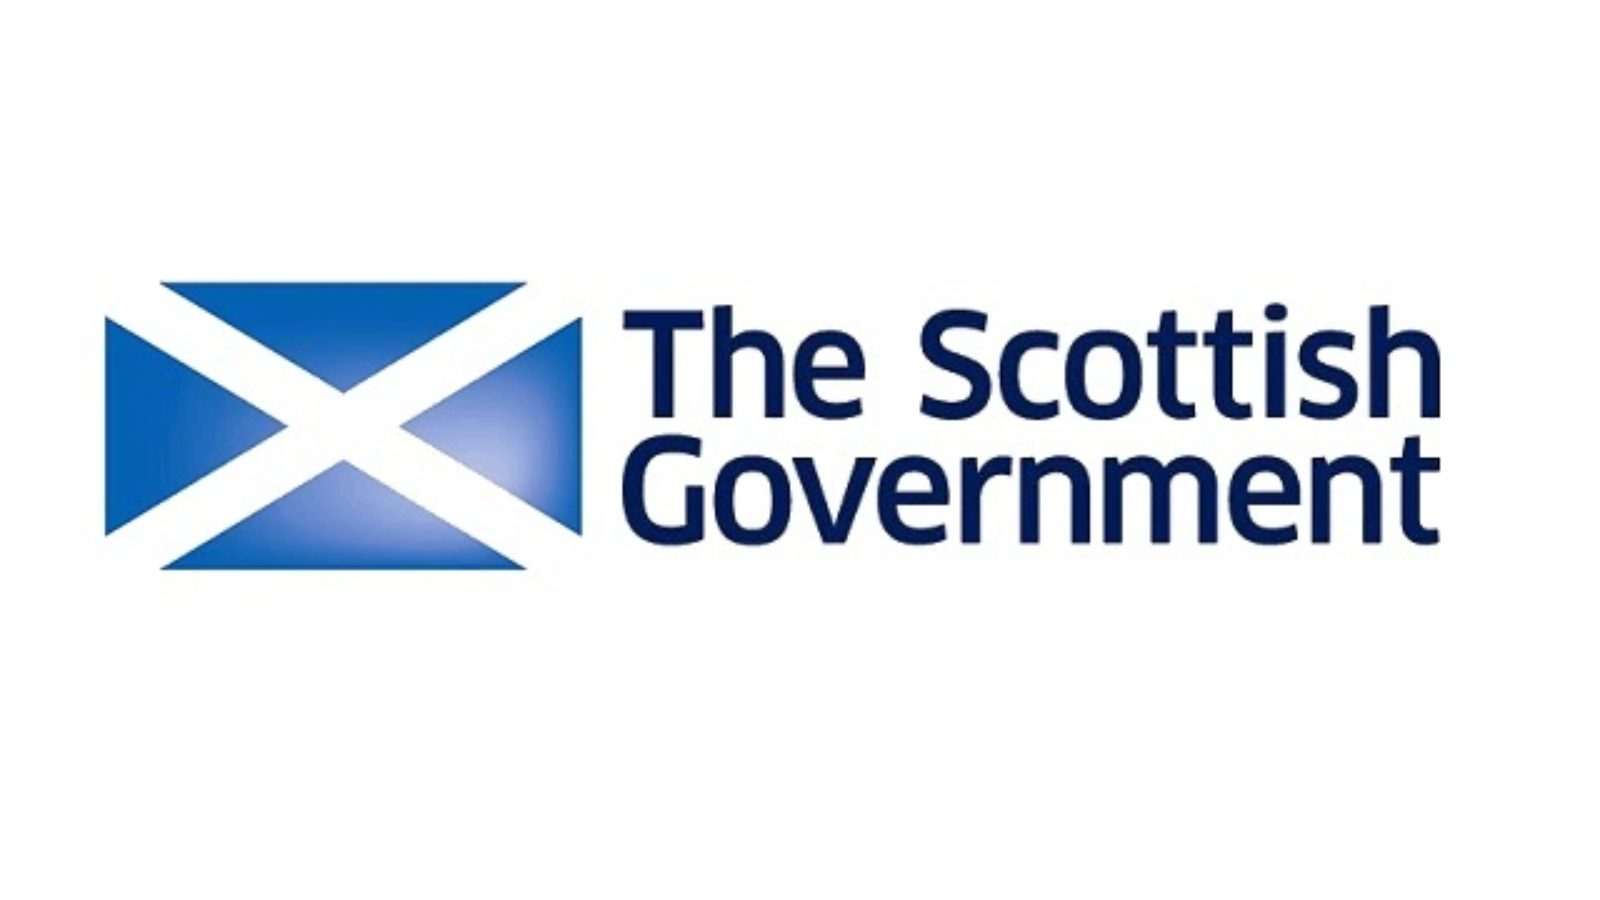 Scotland's Route Map through and out of the crisis - Phase 2 update